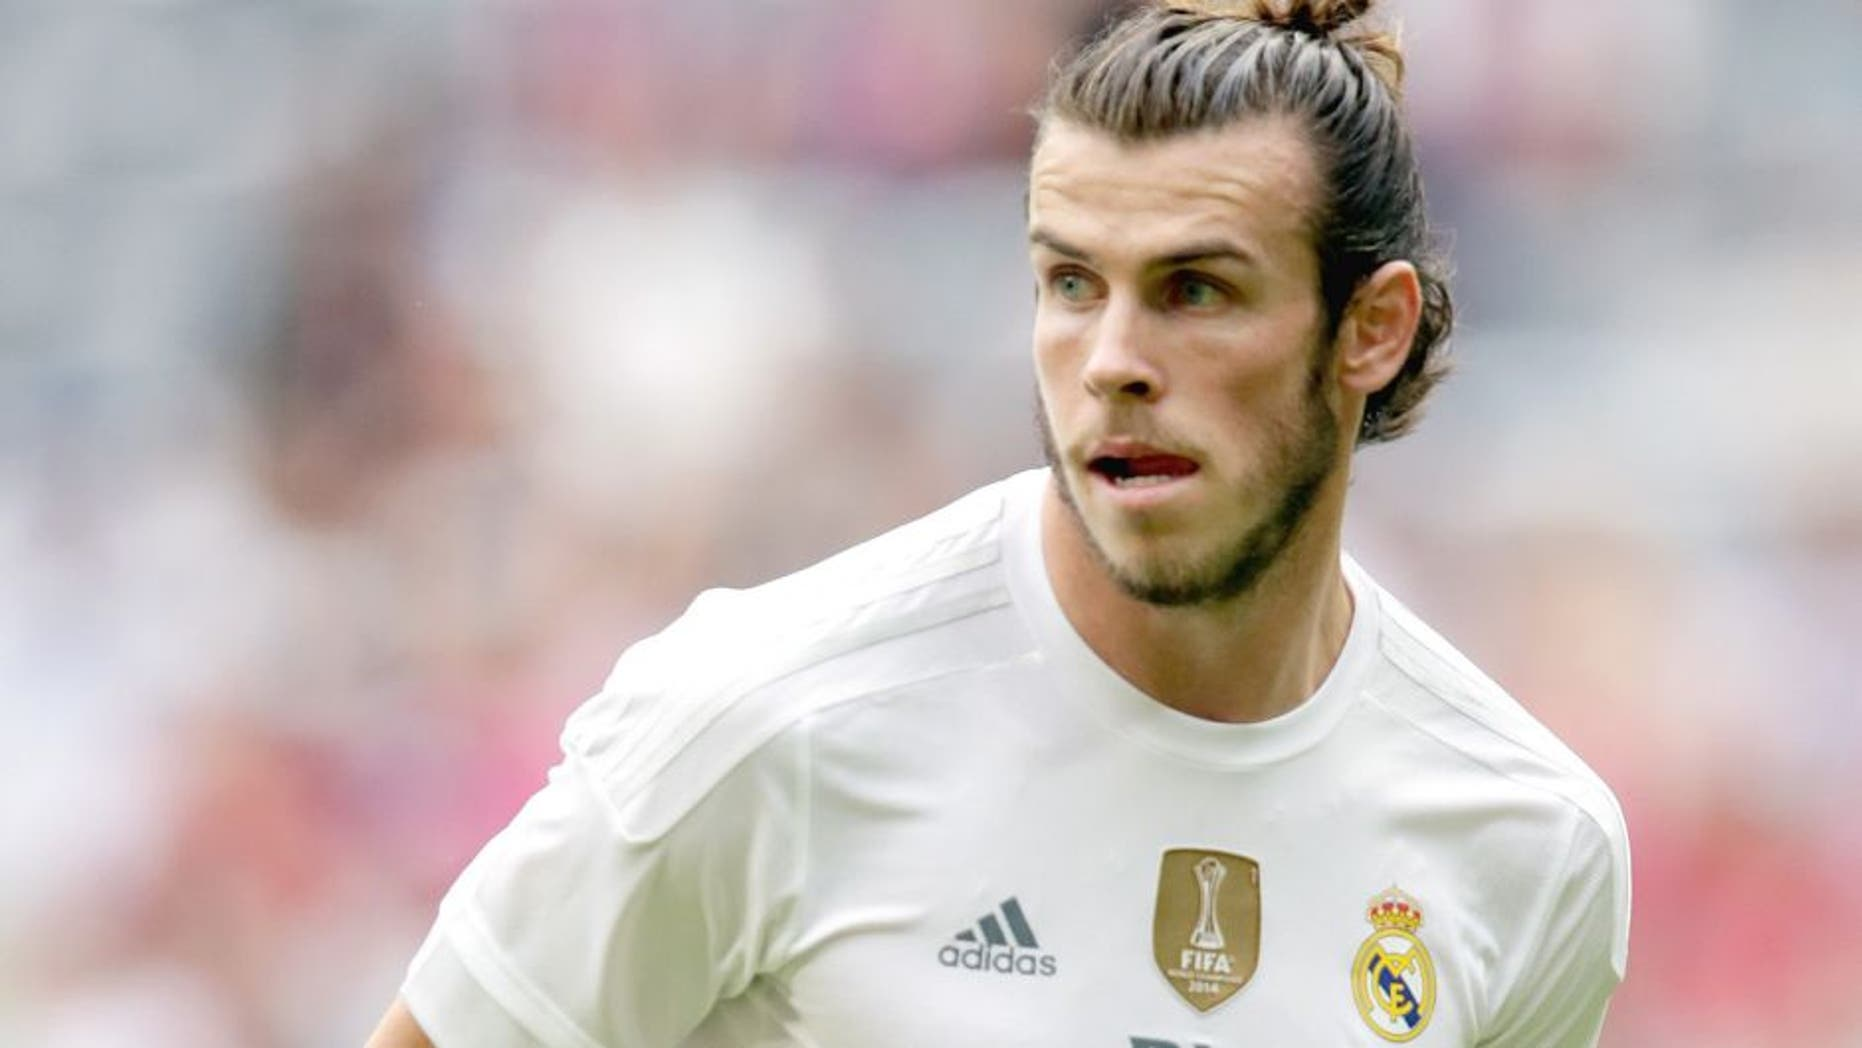 Gareth Bale of Real Madrid during the AUDI Cup match between Real Madrid and Tottenham Hotspur on August 4, 2015 at the Allianz Arena in Munich, Germany(Photo by VI Images via Getty Images)